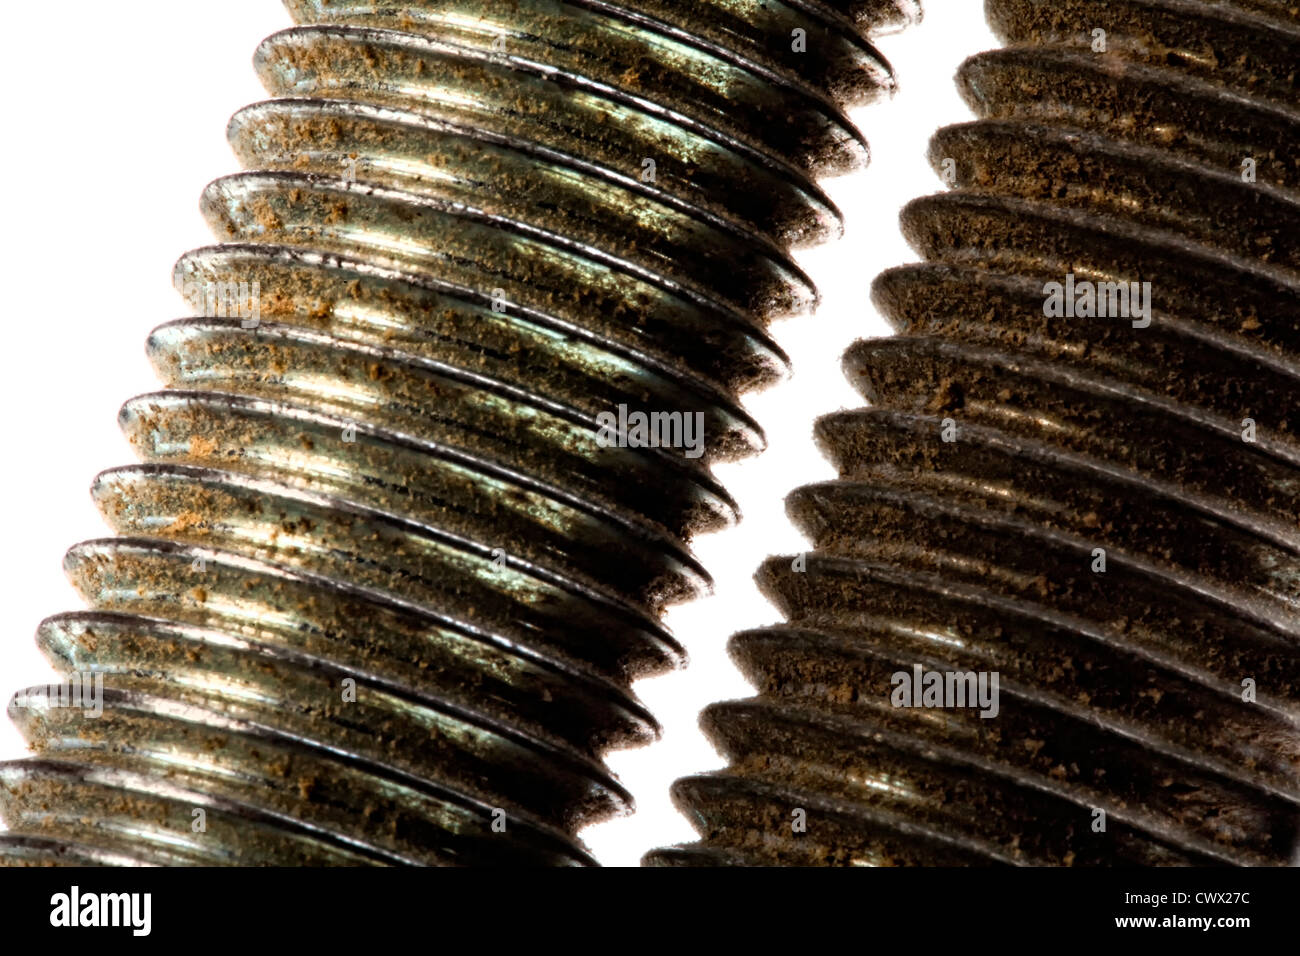 Threads of two screws - Stock Image